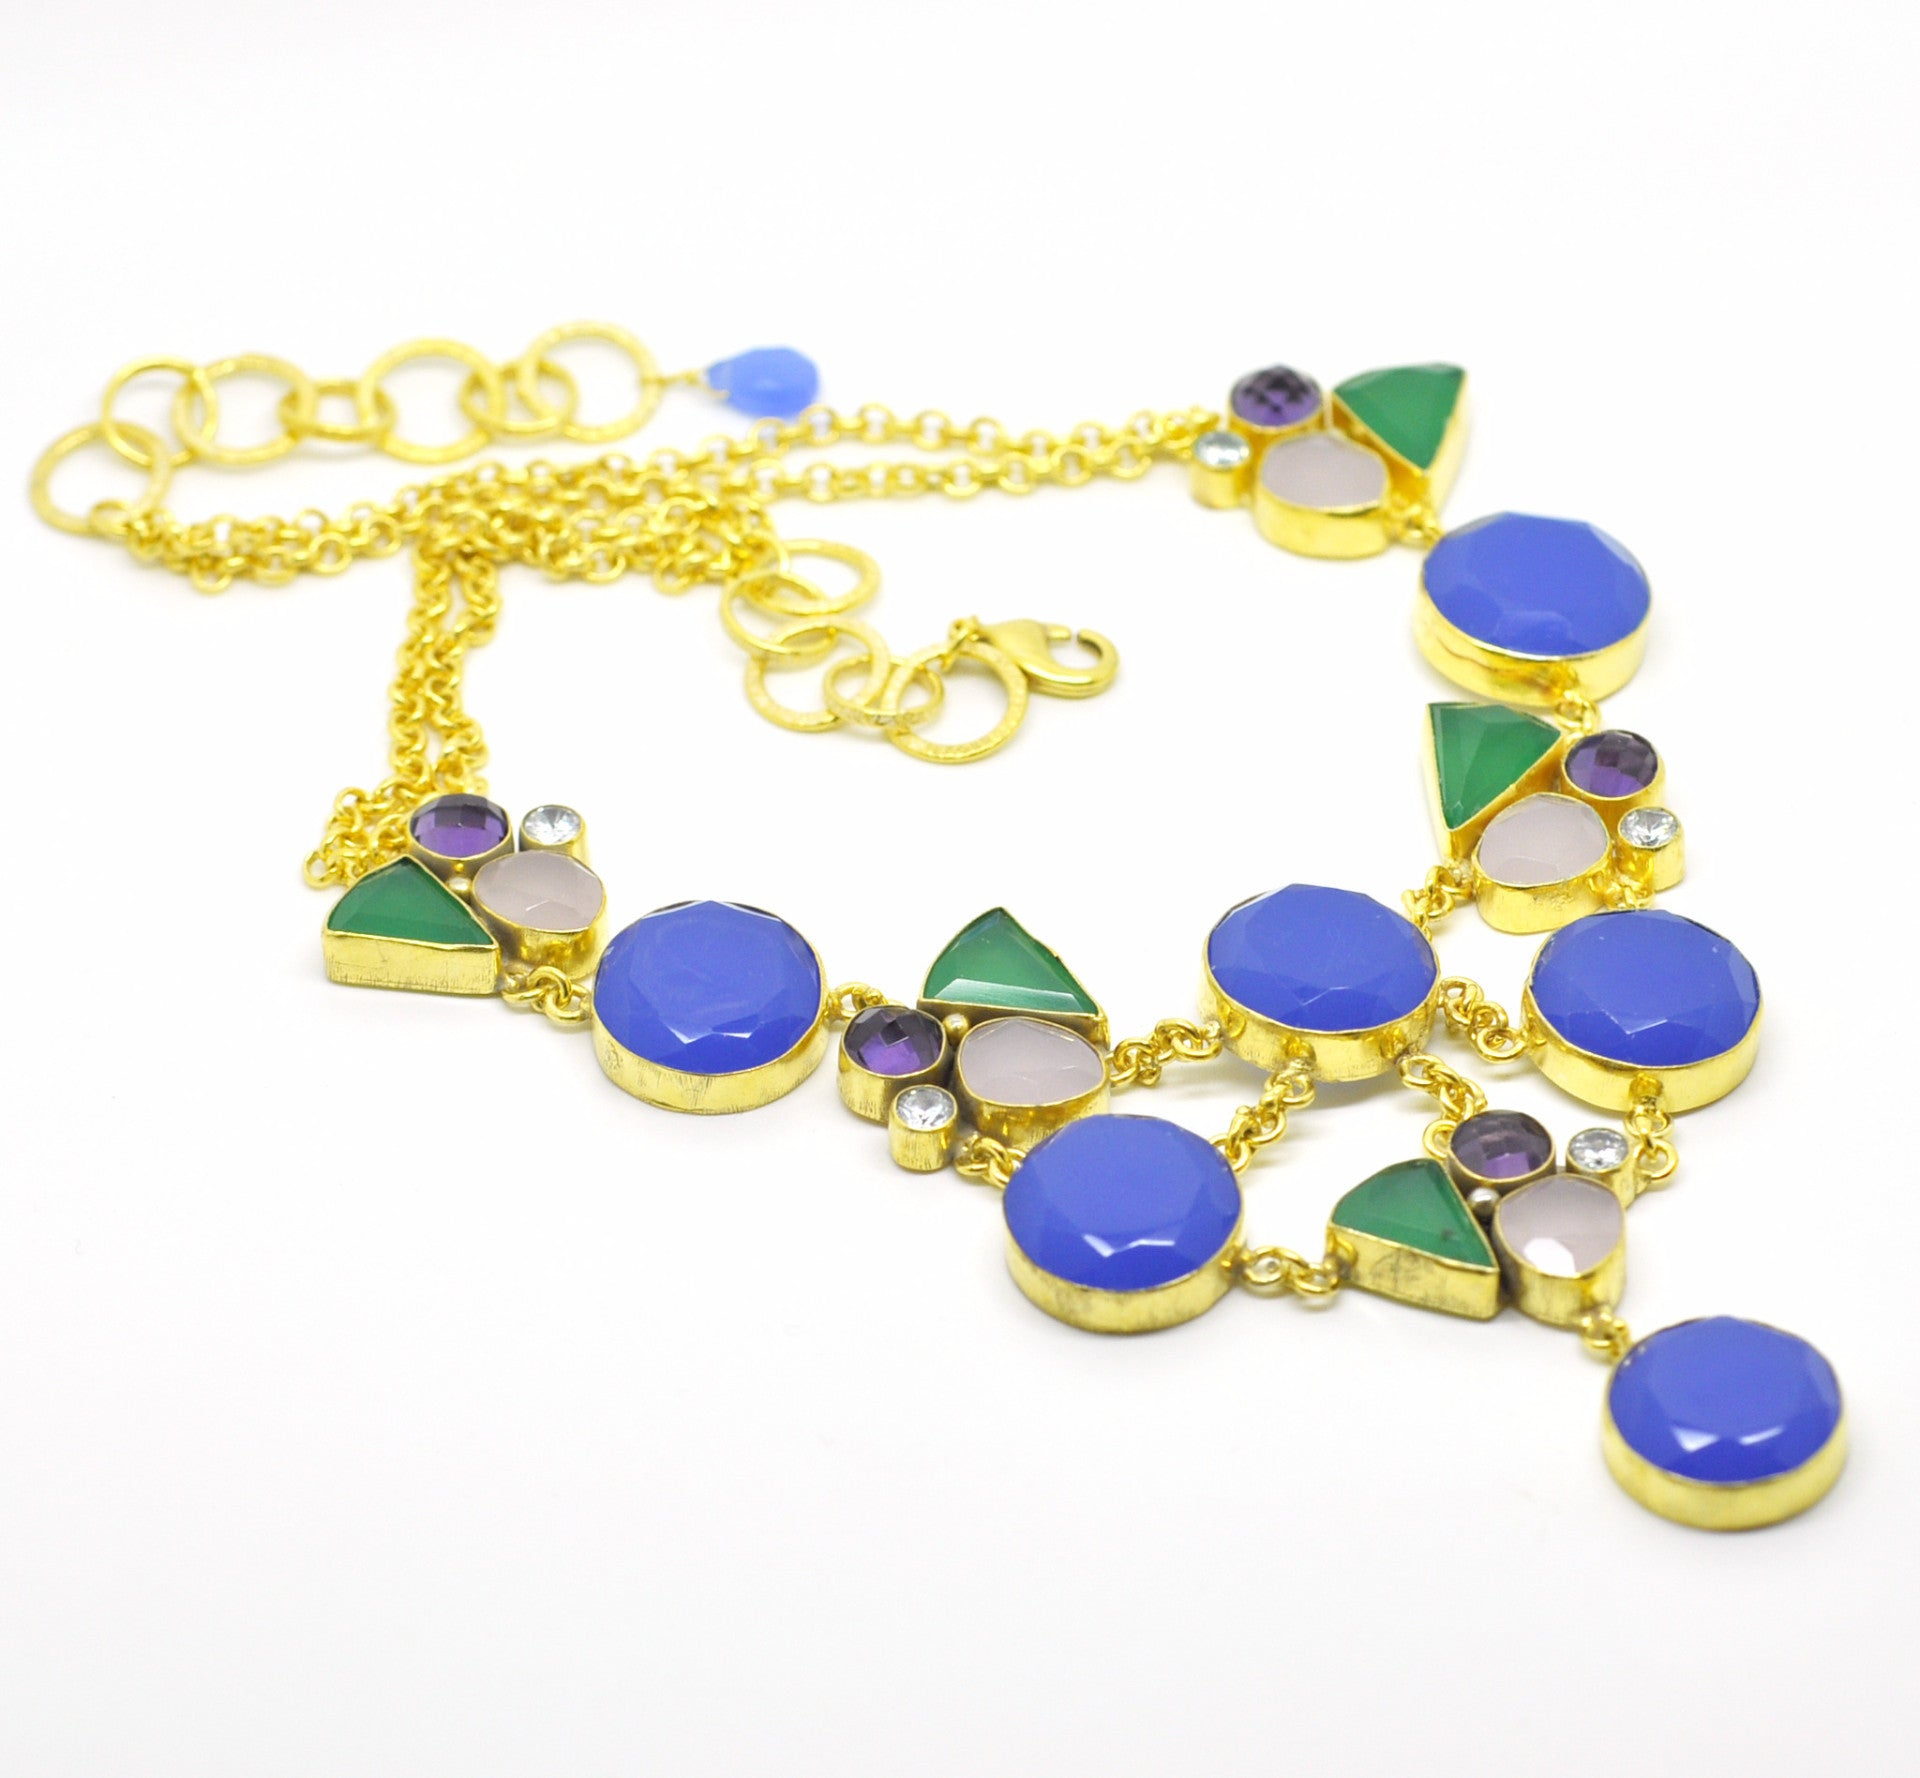 20 in 2020 - Gemstone Necklace 2 (Clearance)